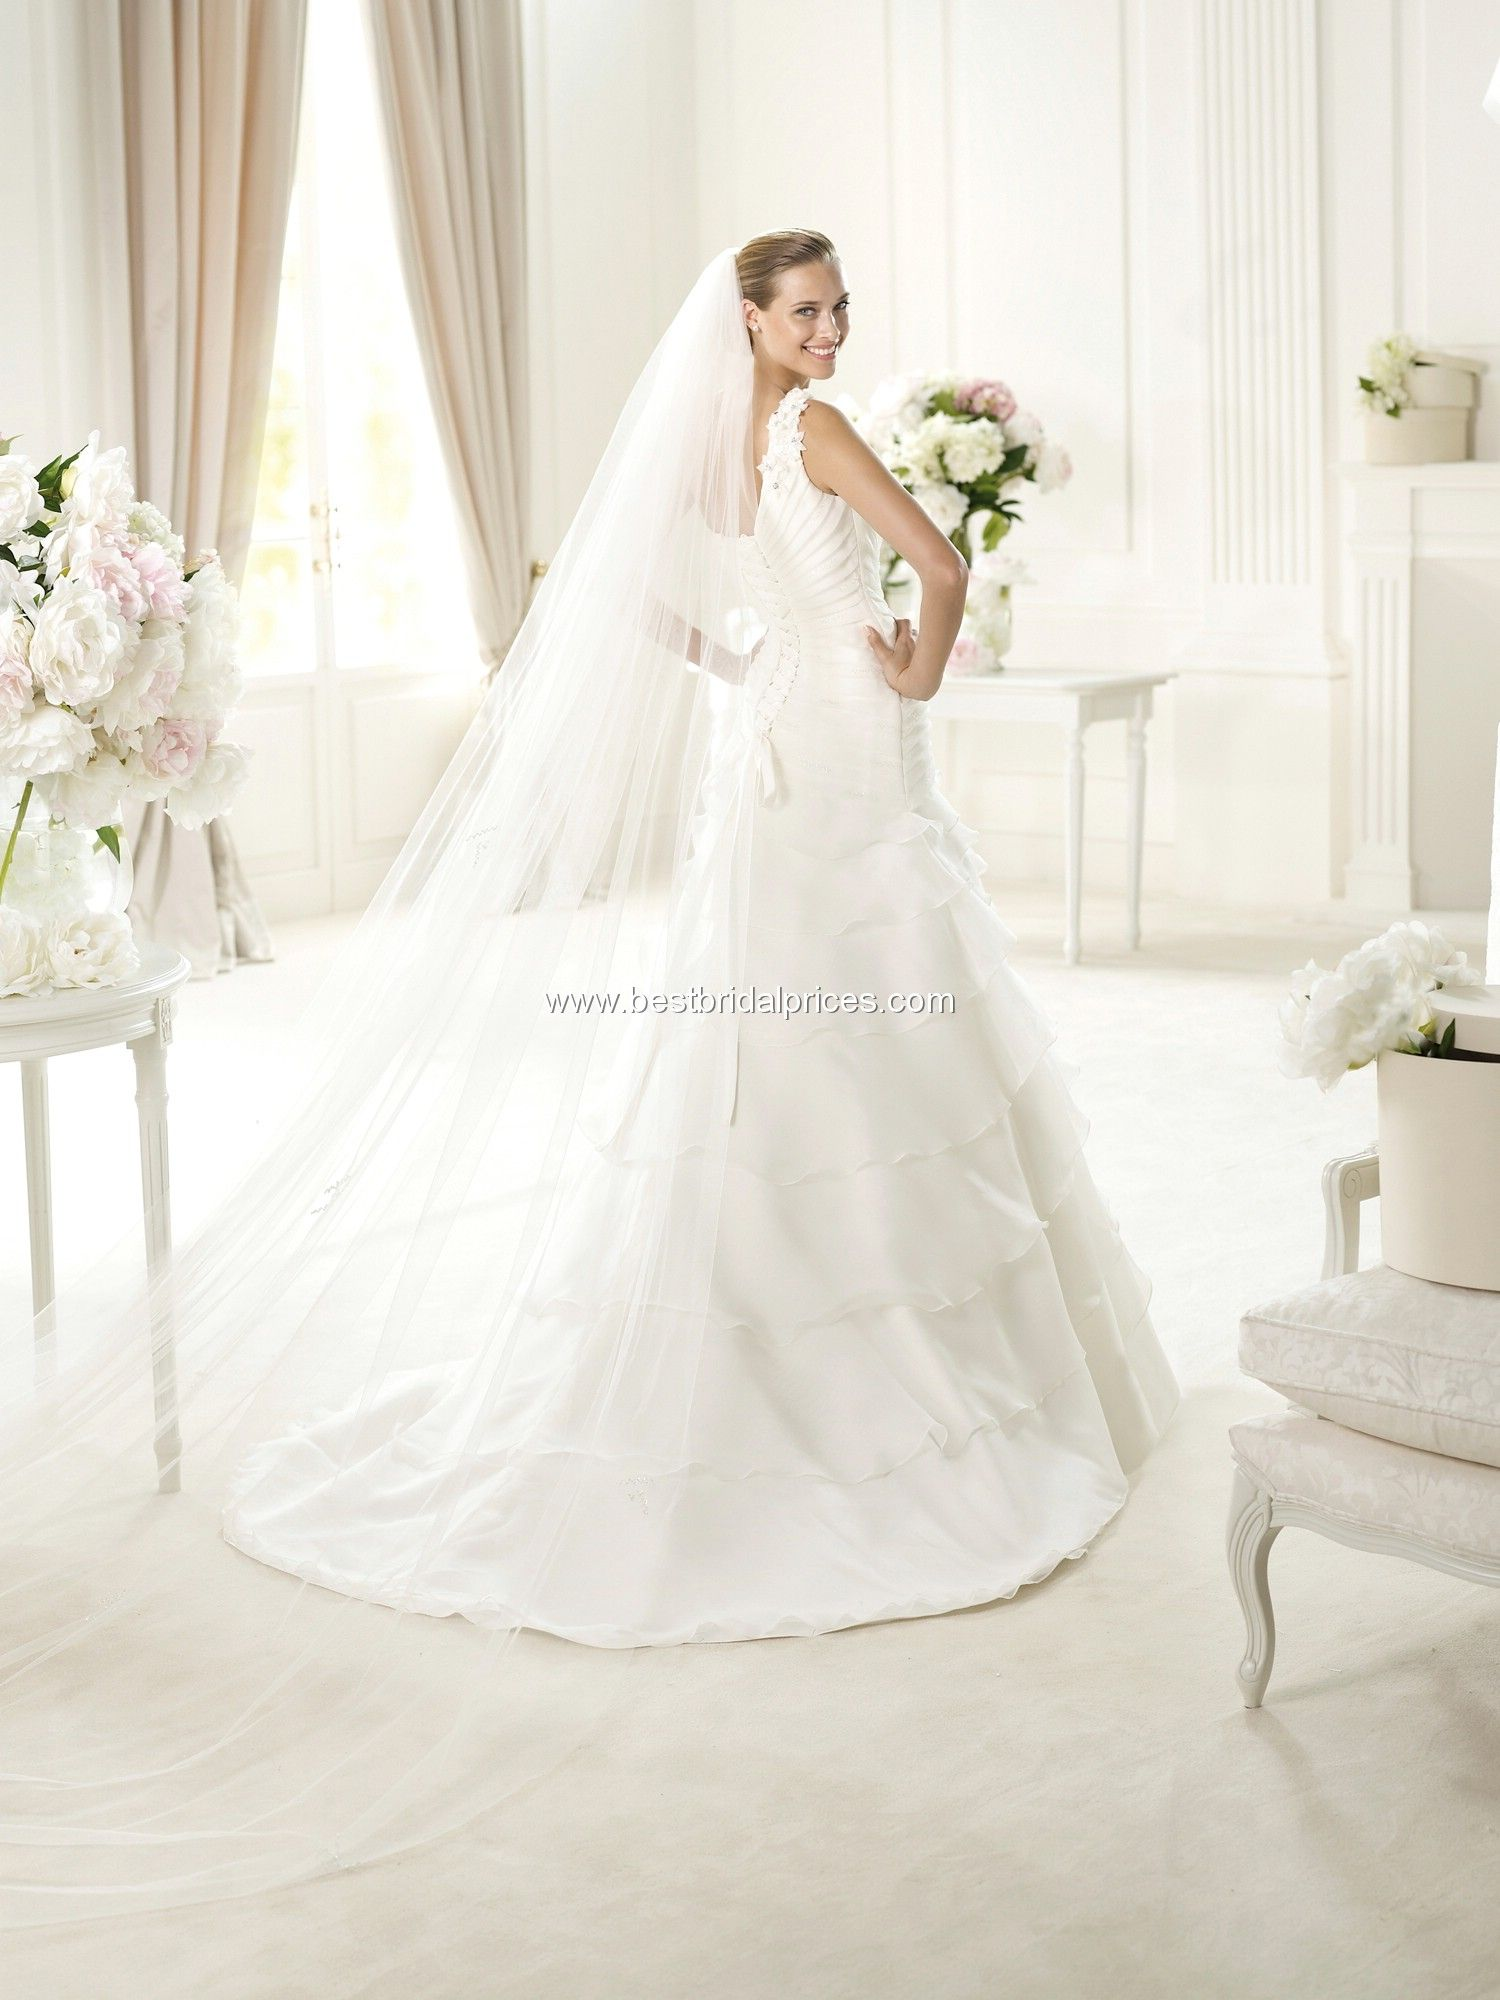 Pronovias wedding dresses style utica utica love the layers and